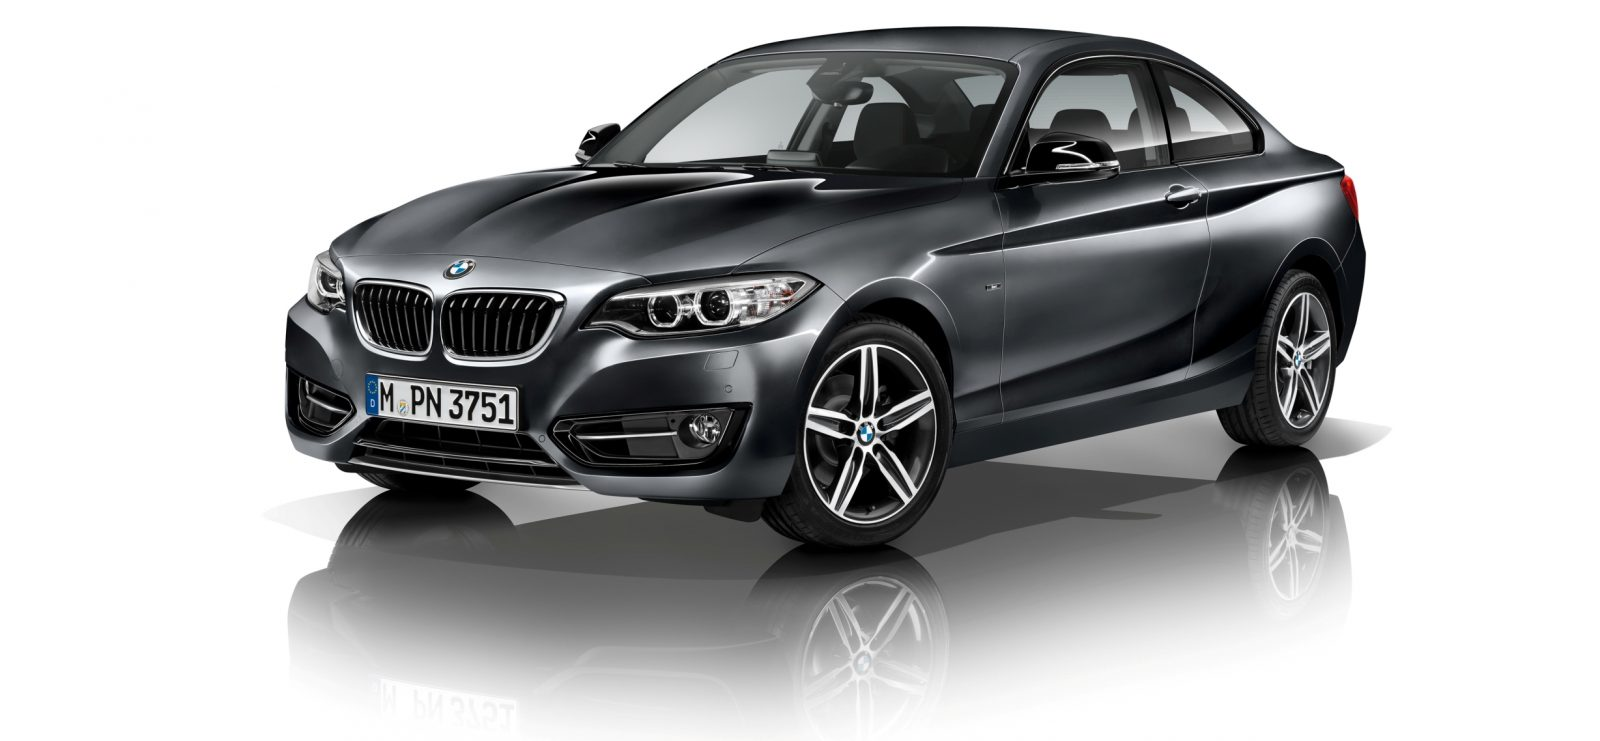 2014 BMW 228i and M235i 36